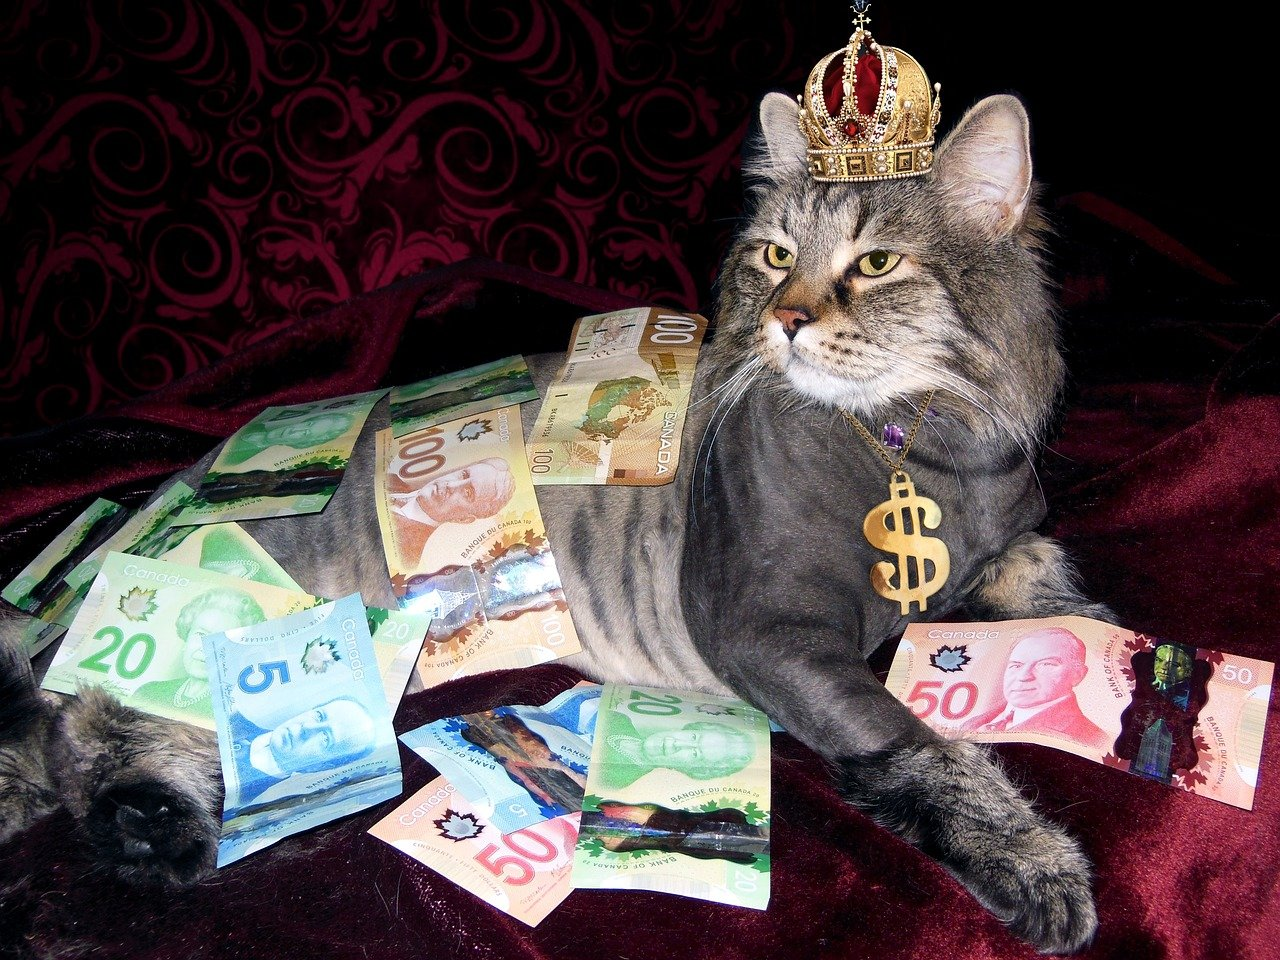 Cat with crown on red background with dollar sign collar and Canadian money